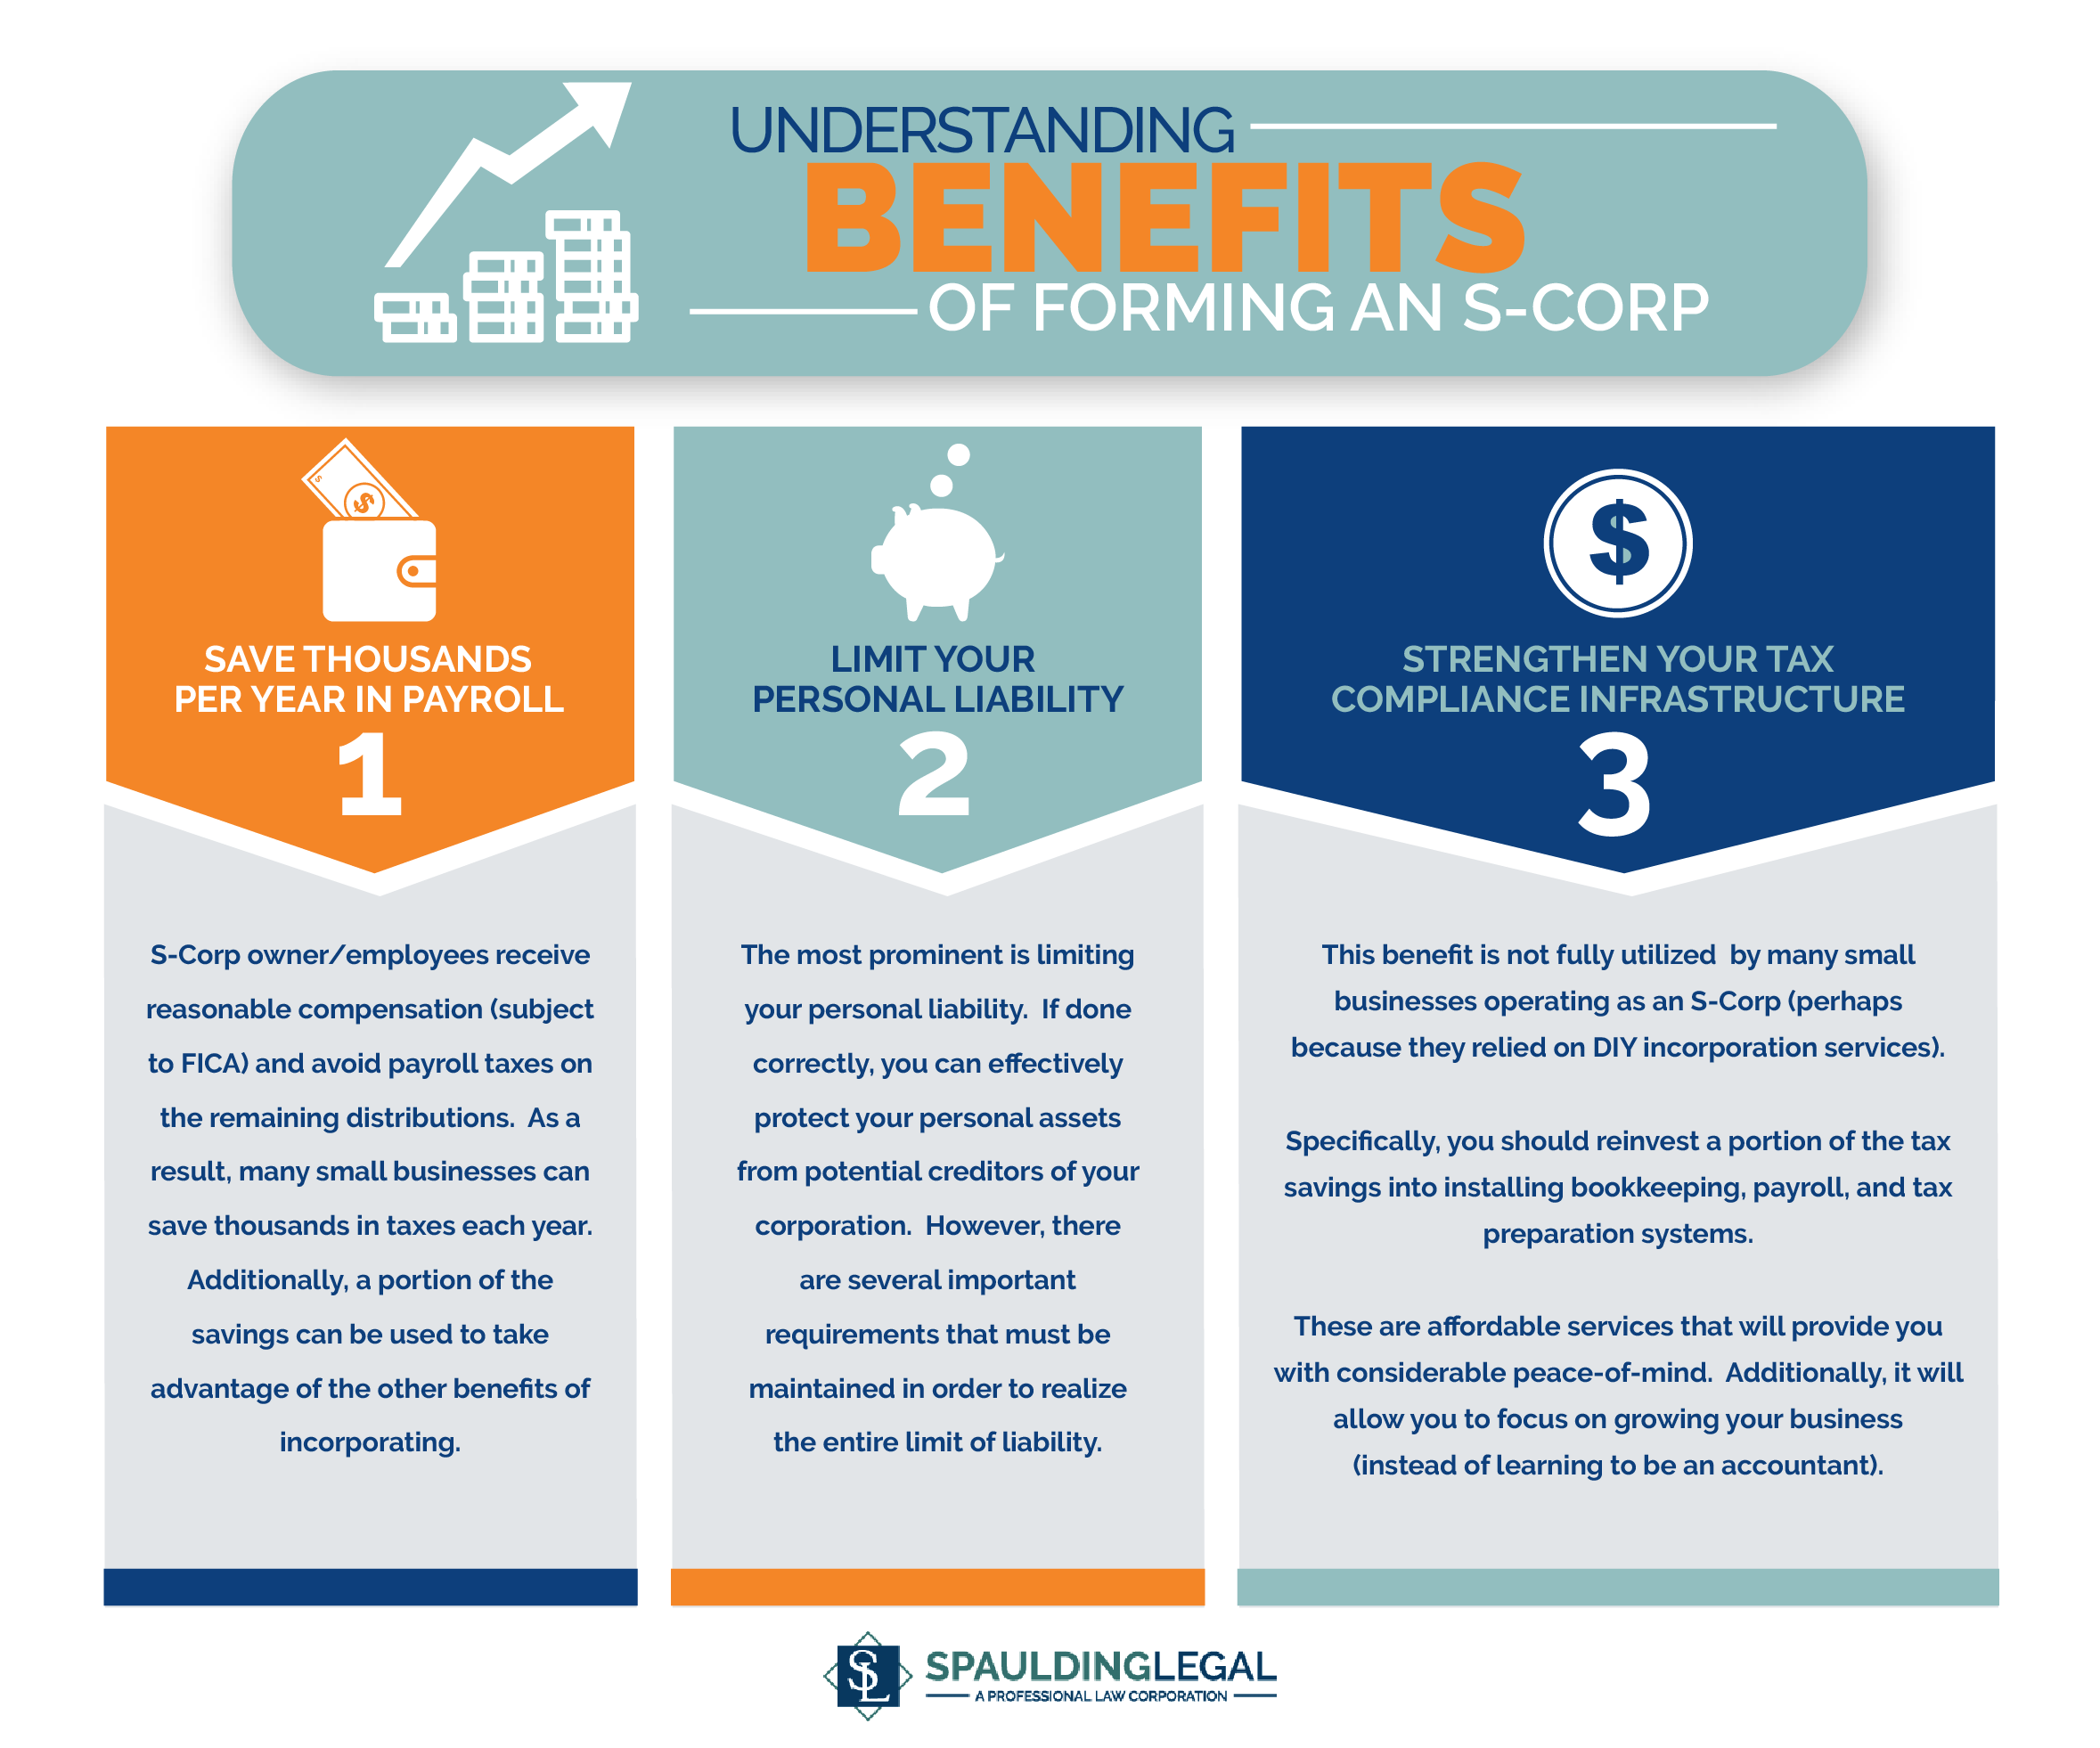 Describing the three most important benefits of forming an S-Corp